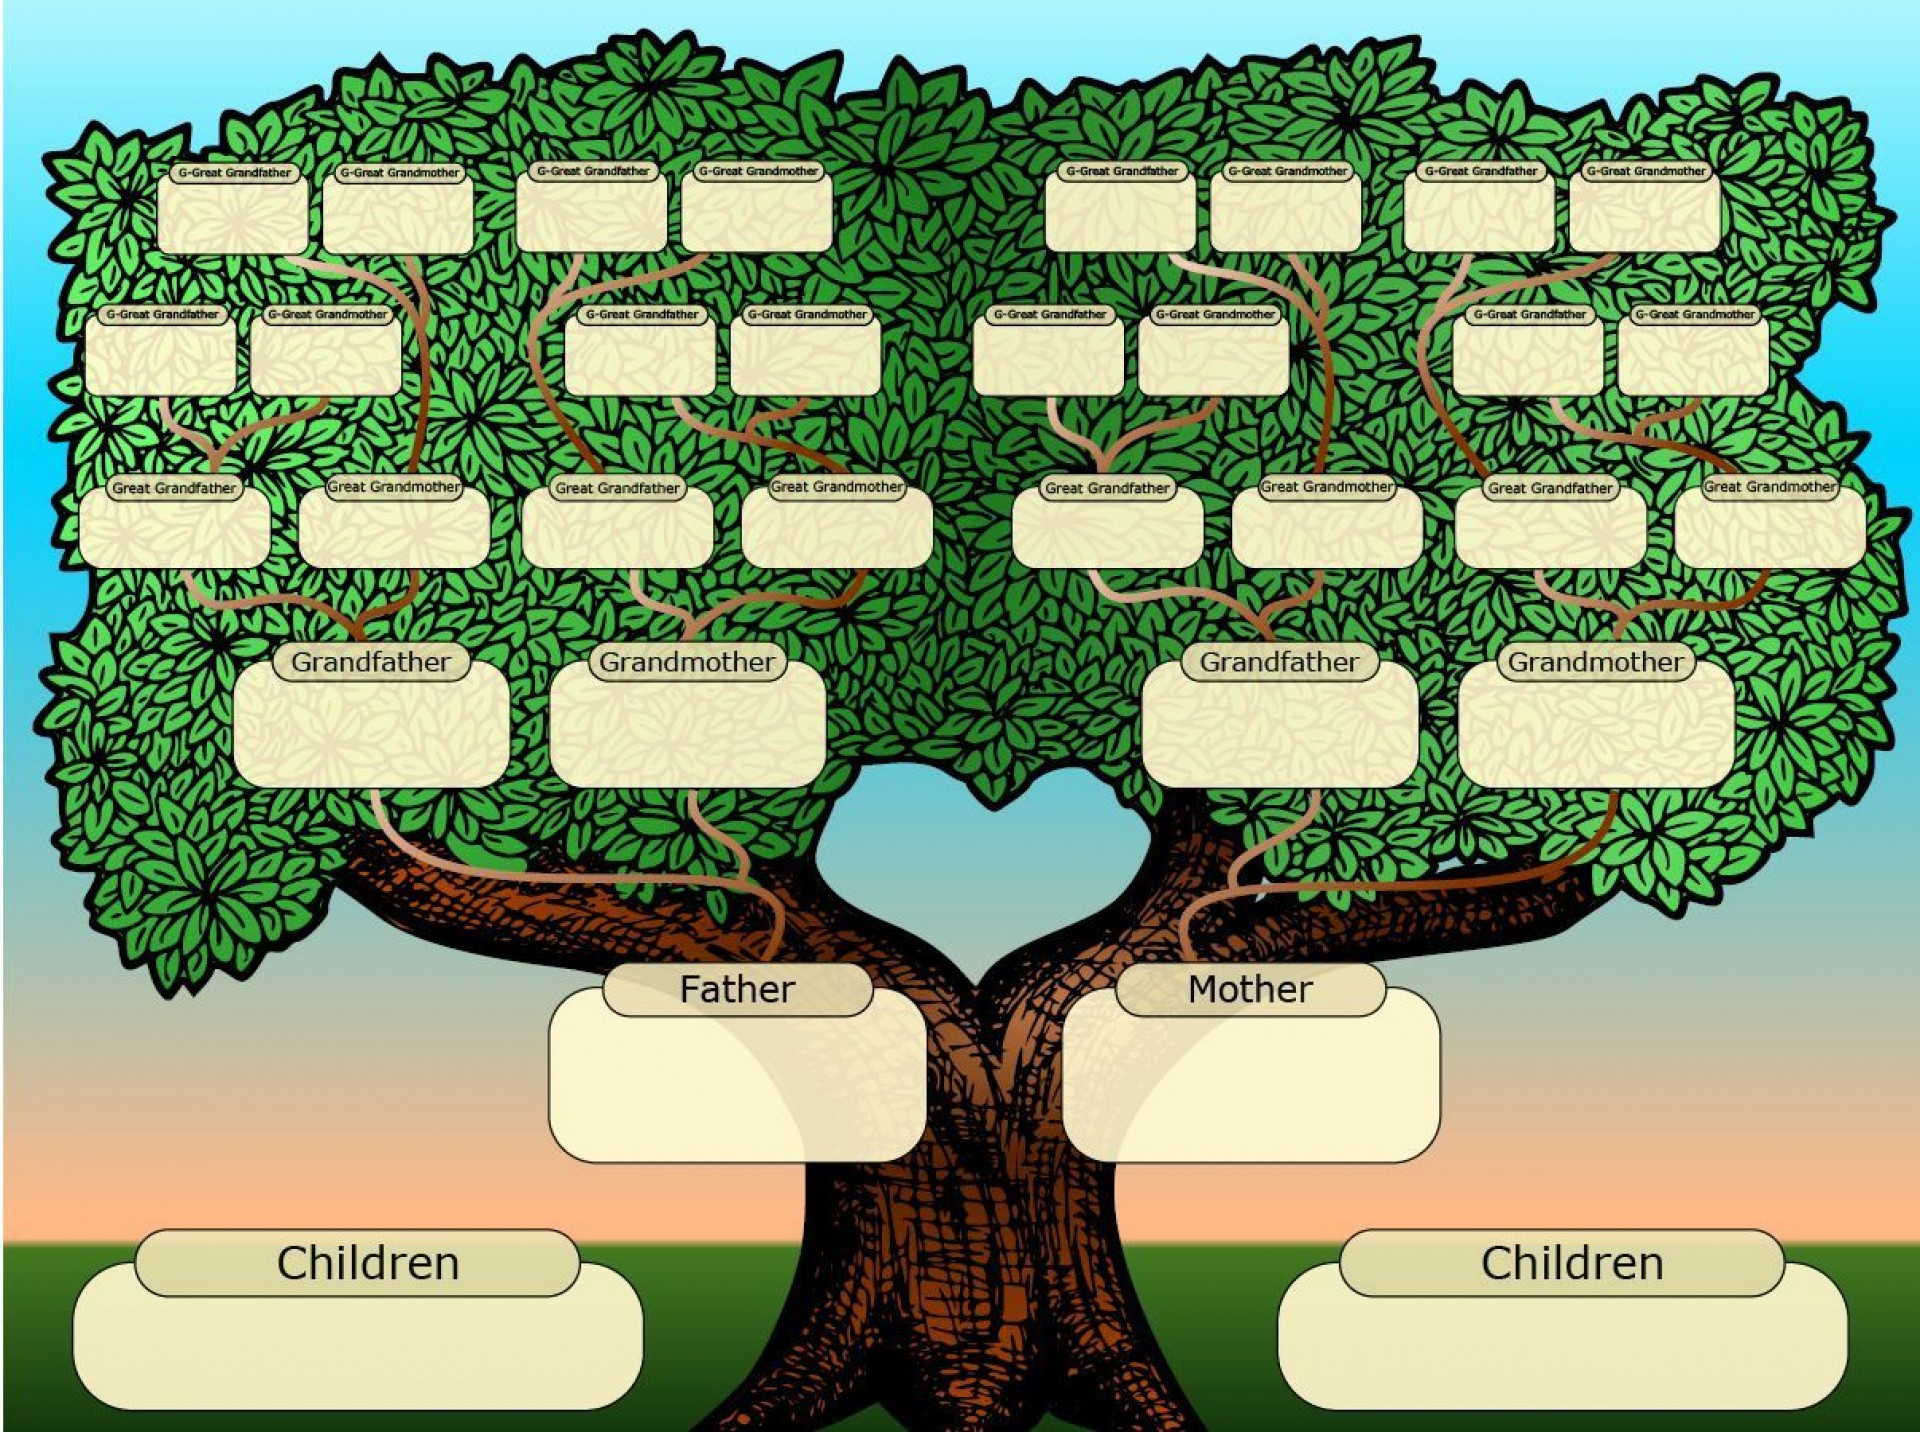 001 Imposing Editable Family Tree Template Online Free Inspiration 1920